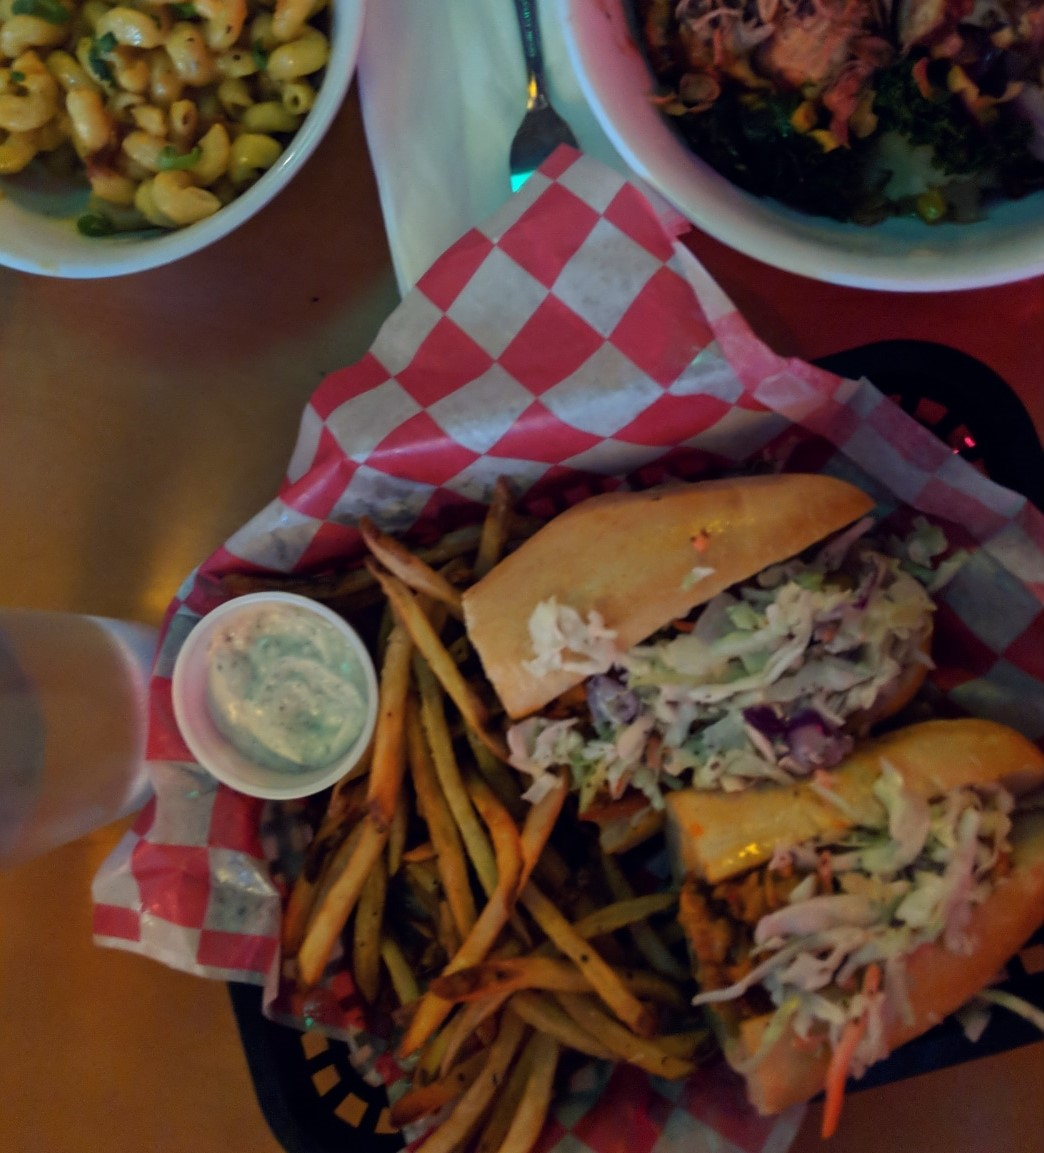 Of course I'll have fries with that Buffalo Po Boy!